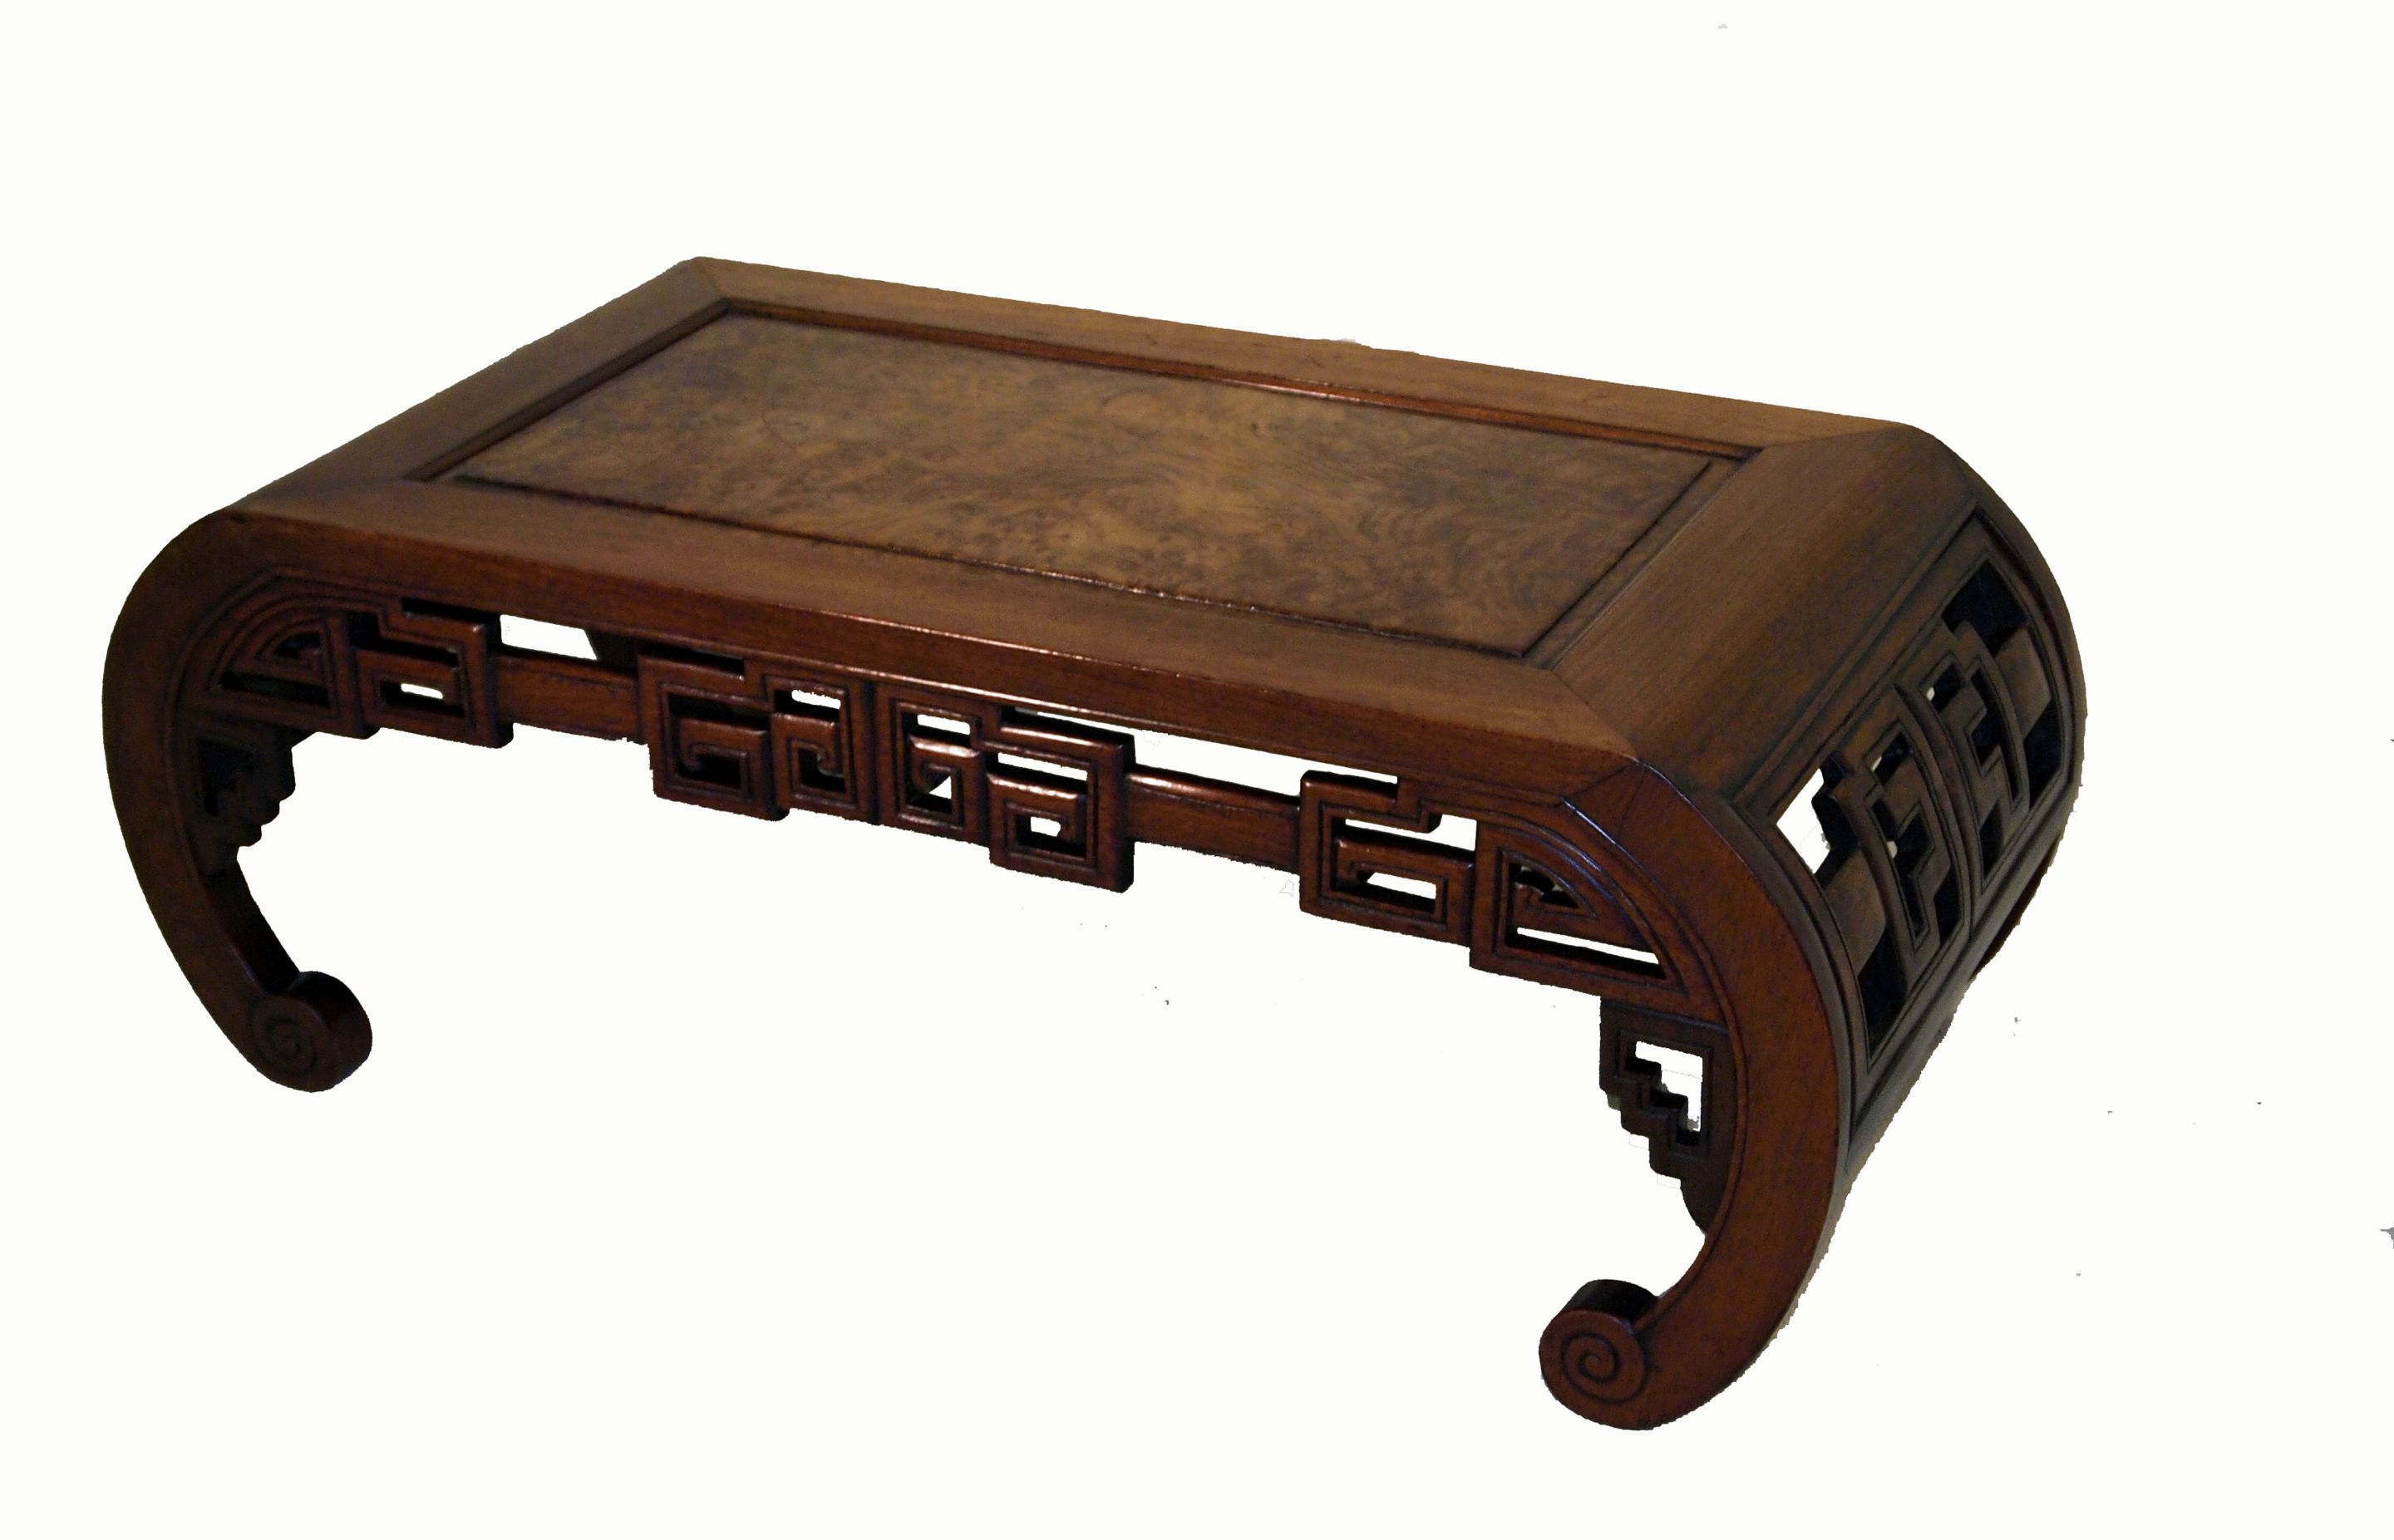 Antique Oriental Coffee Table Antique Coffee Tables Coffee Table Vintage Coffee Table [ 1853 x 2880 Pixel ]